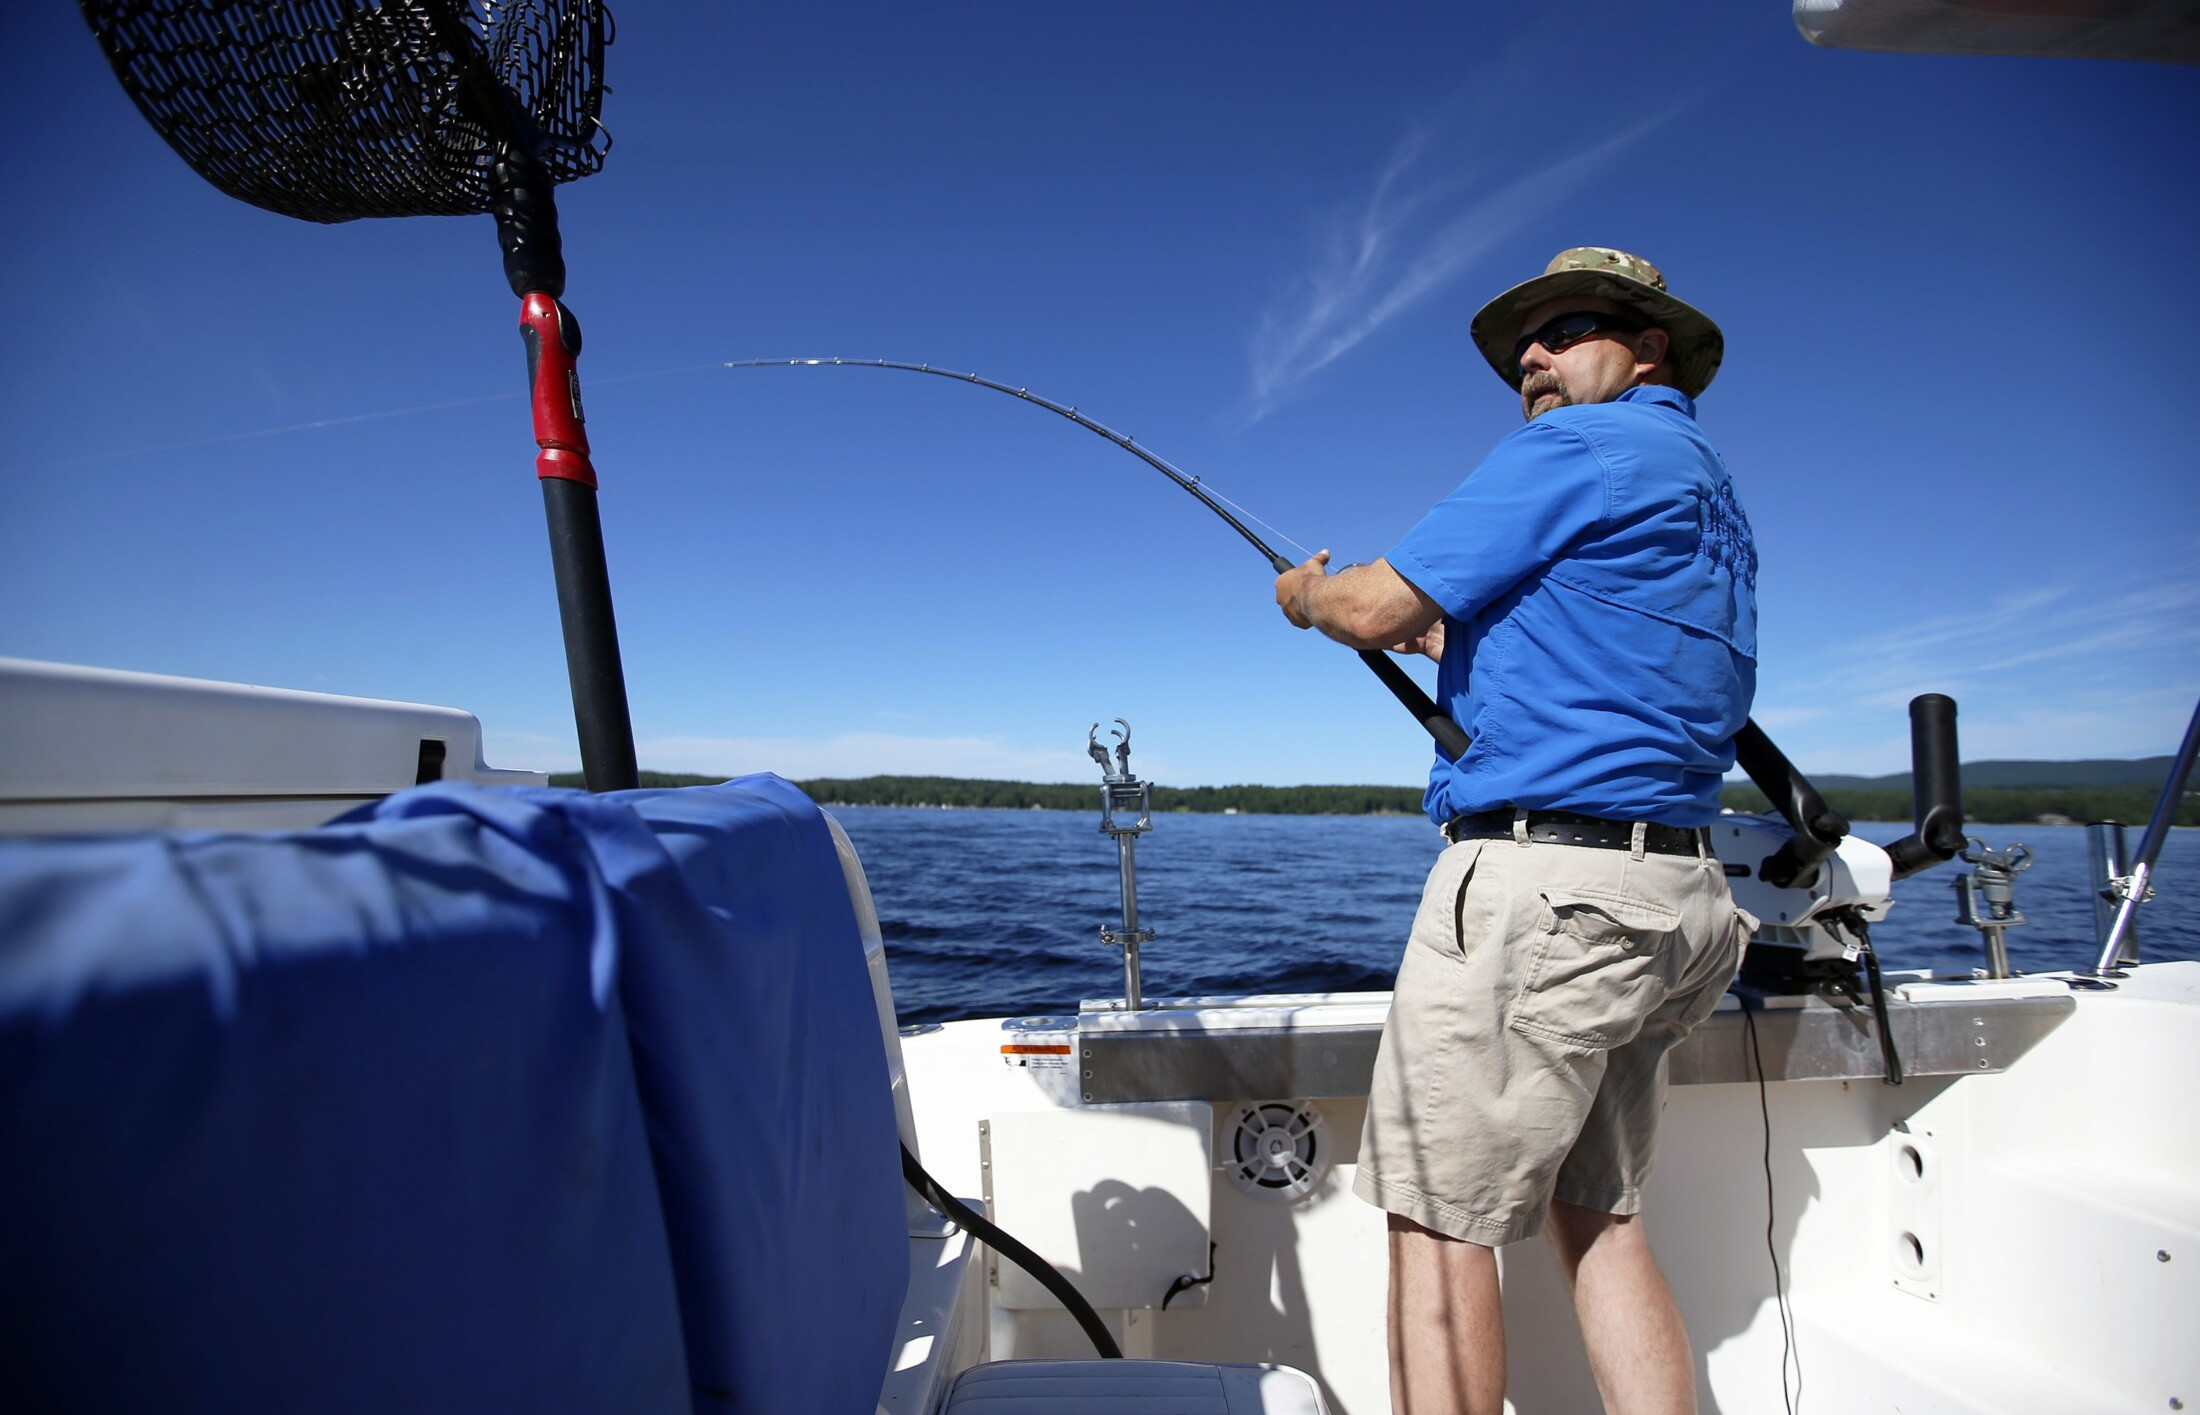 Why catch-and-release is killing, not conserving, Maine